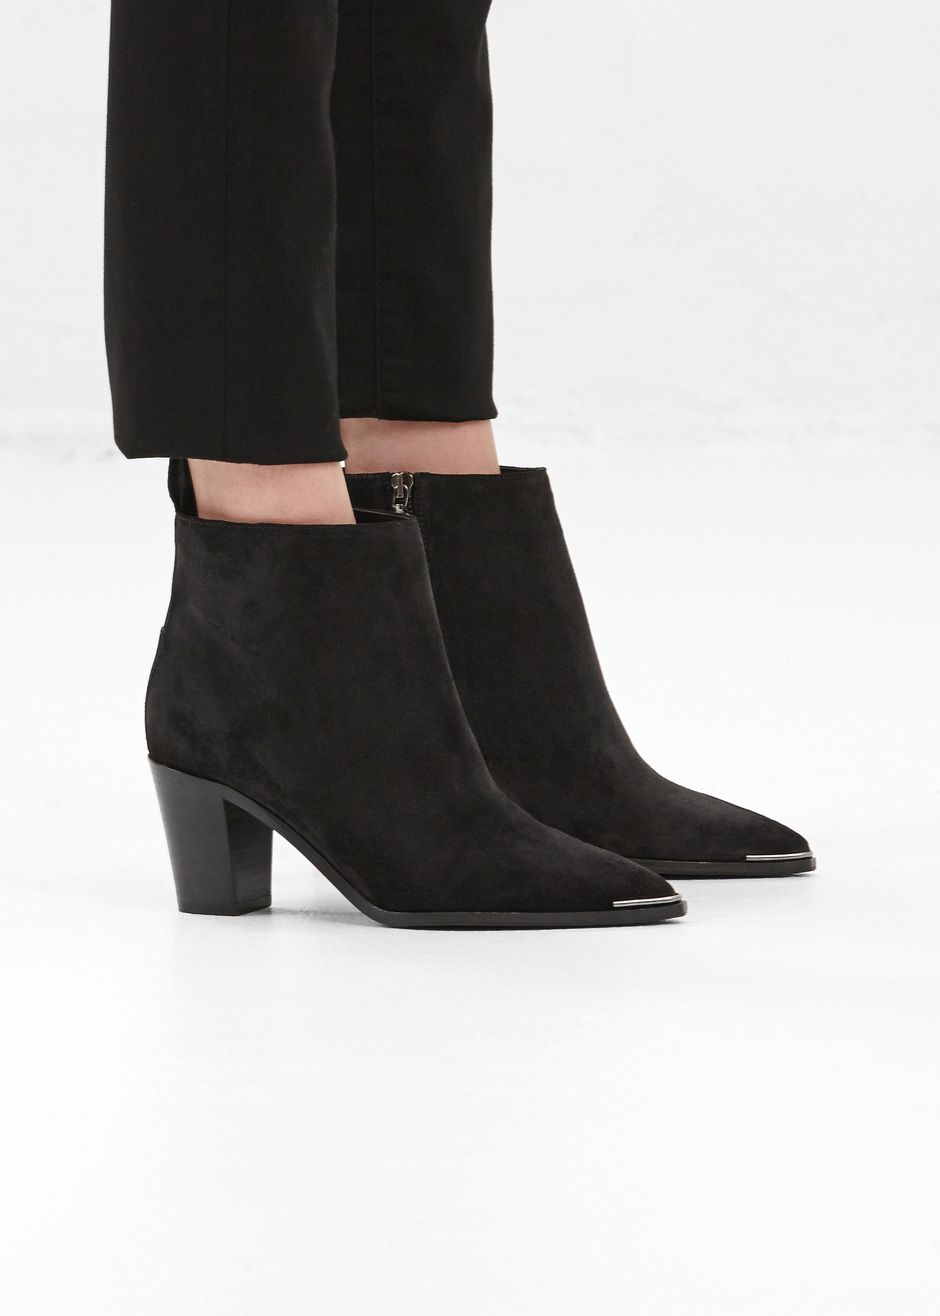 acne studios loma suede ankle boot black shooz. Black Bedroom Furniture Sets. Home Design Ideas